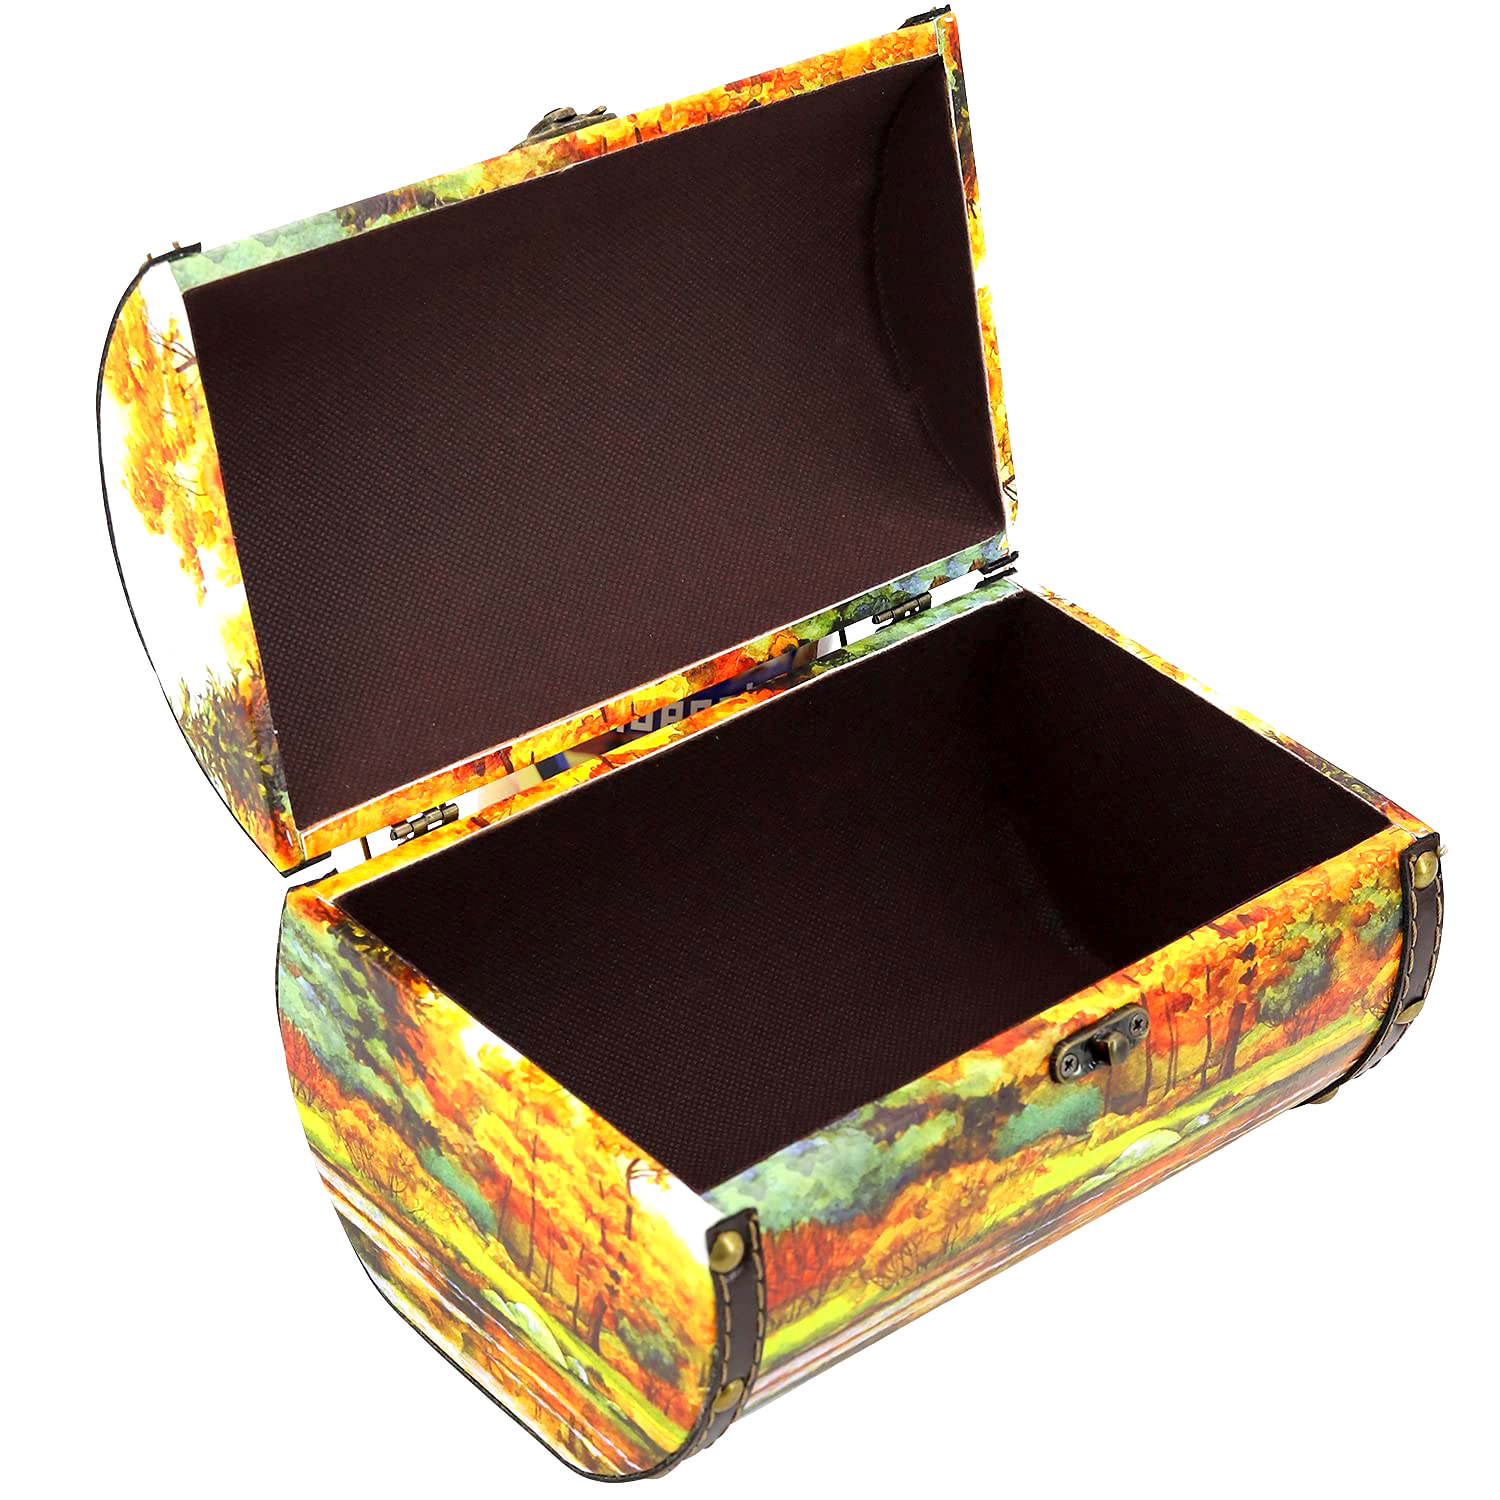 Exclusive Sweet Gift (Only Chocolate Candy Inside) Autumn Chest, Wood+Leather, 0.9 kg/ 2 lb